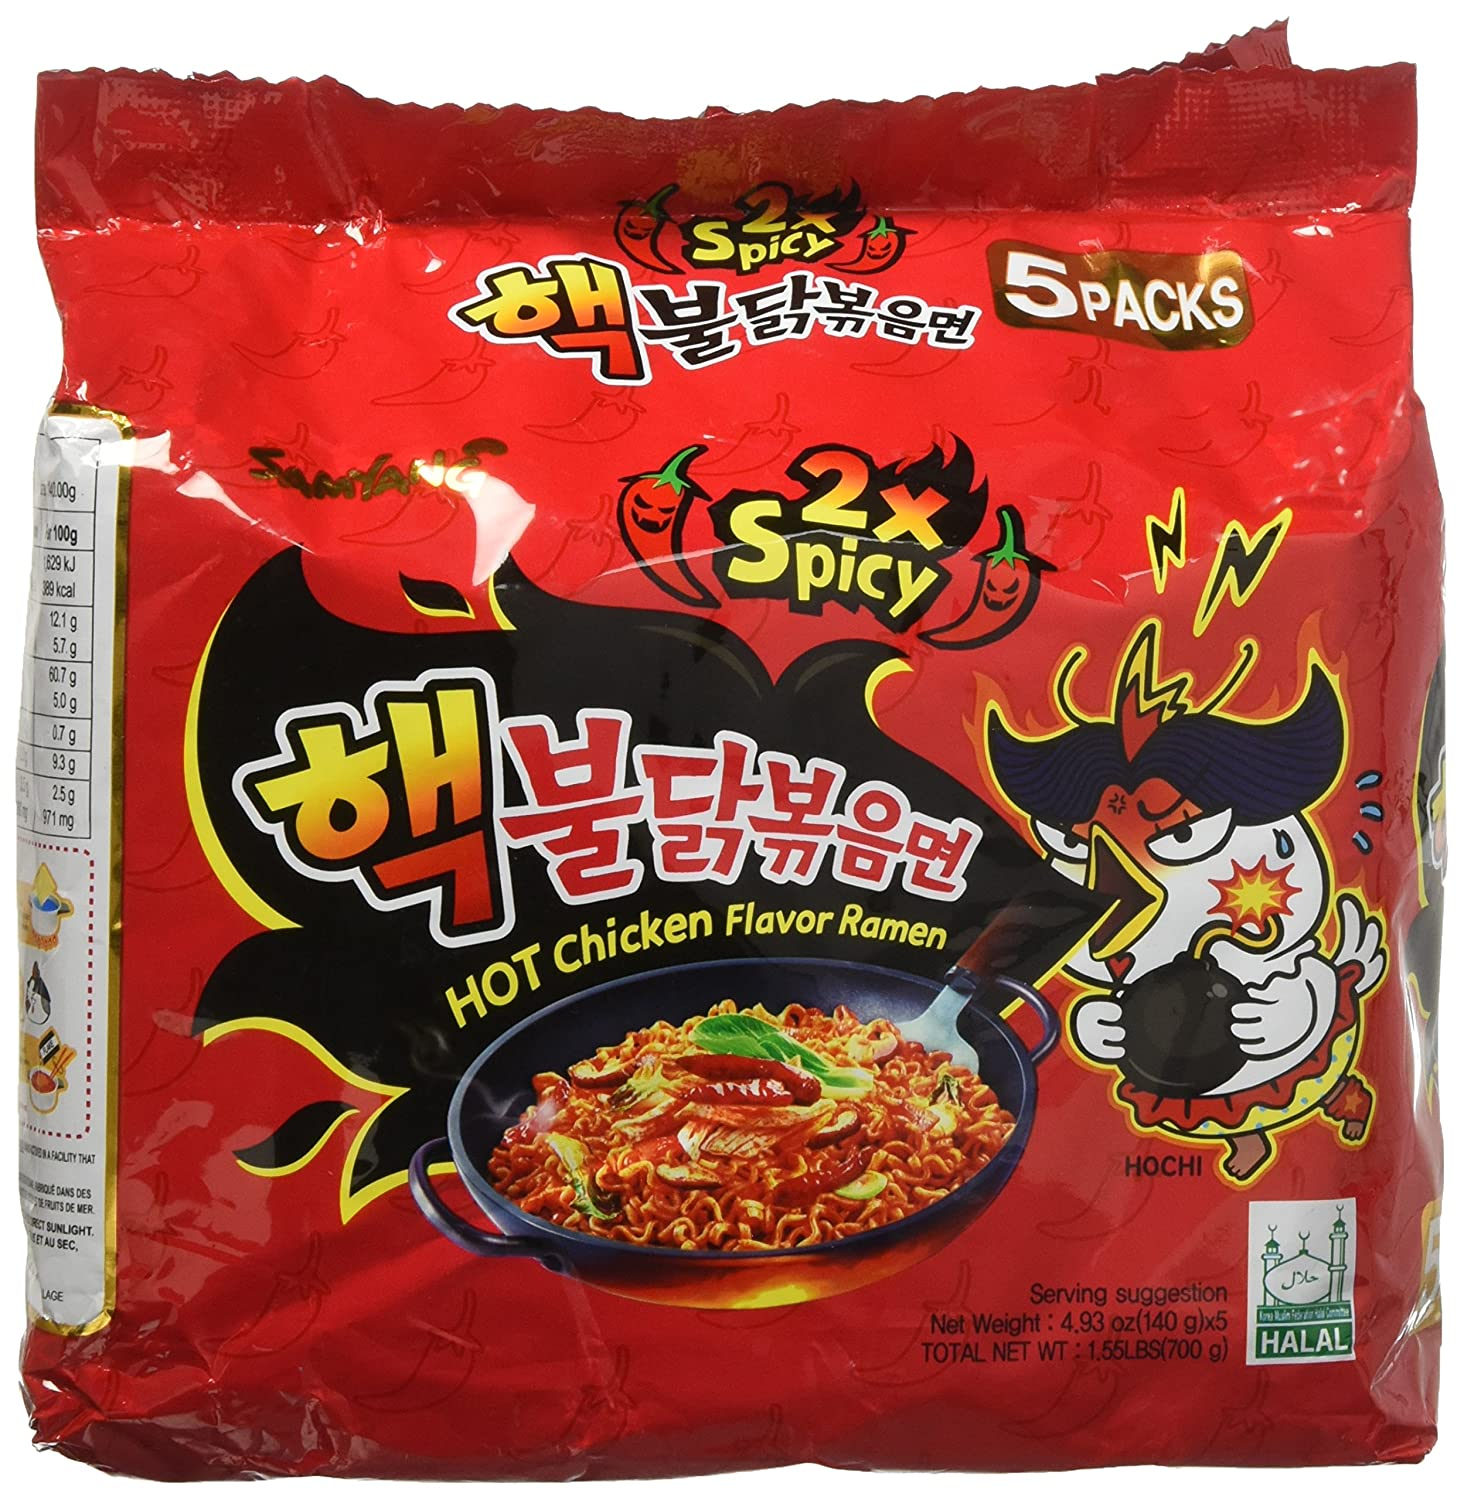 Samyang-Spicy-Chicken-Flavor-Ramen